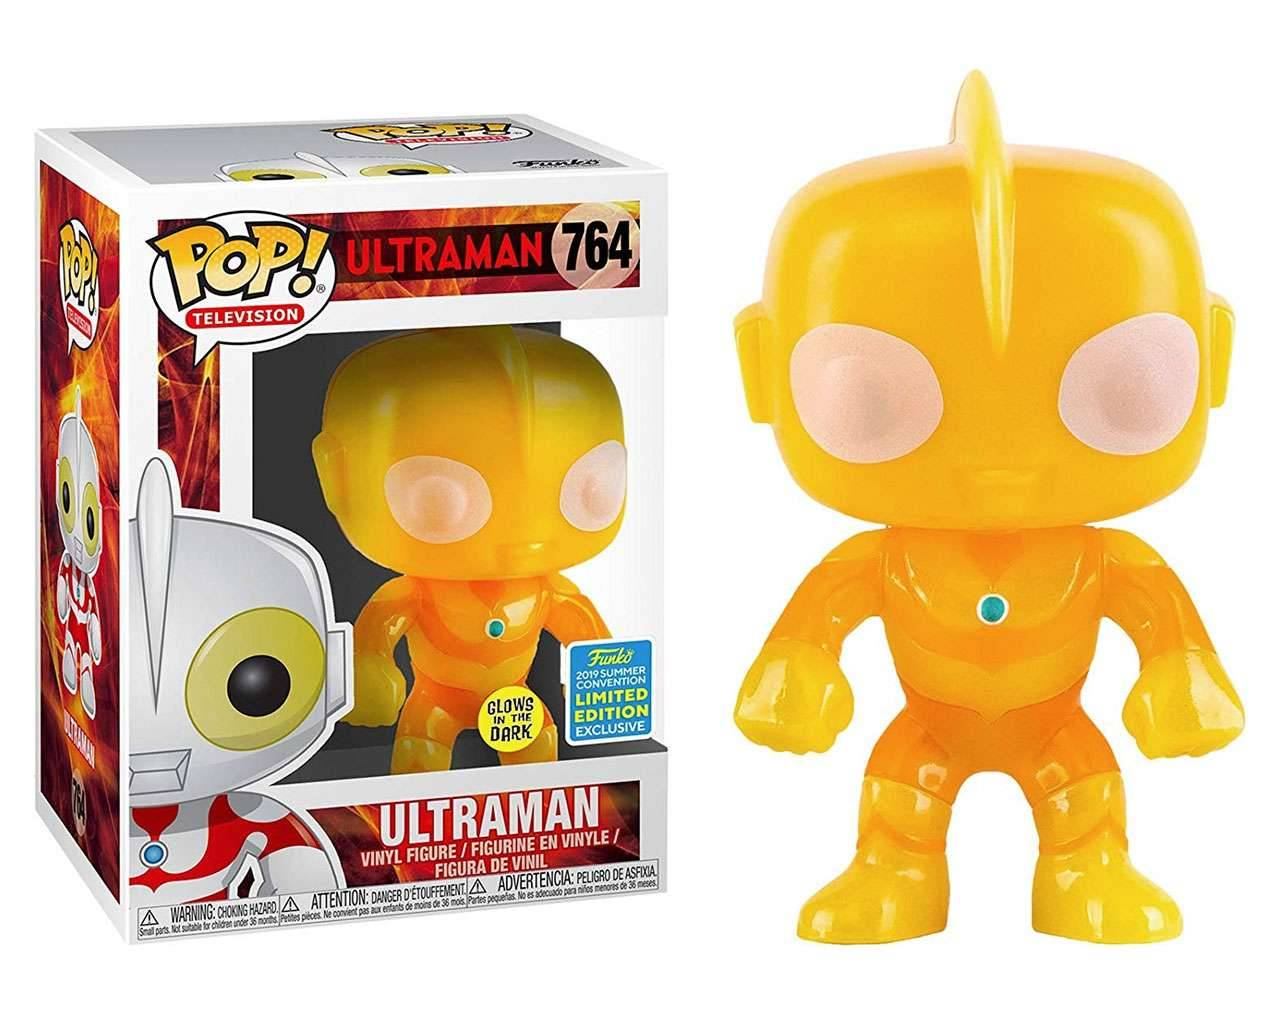 Ultraman GITD (SDCC 2019) Pop! Vinyl